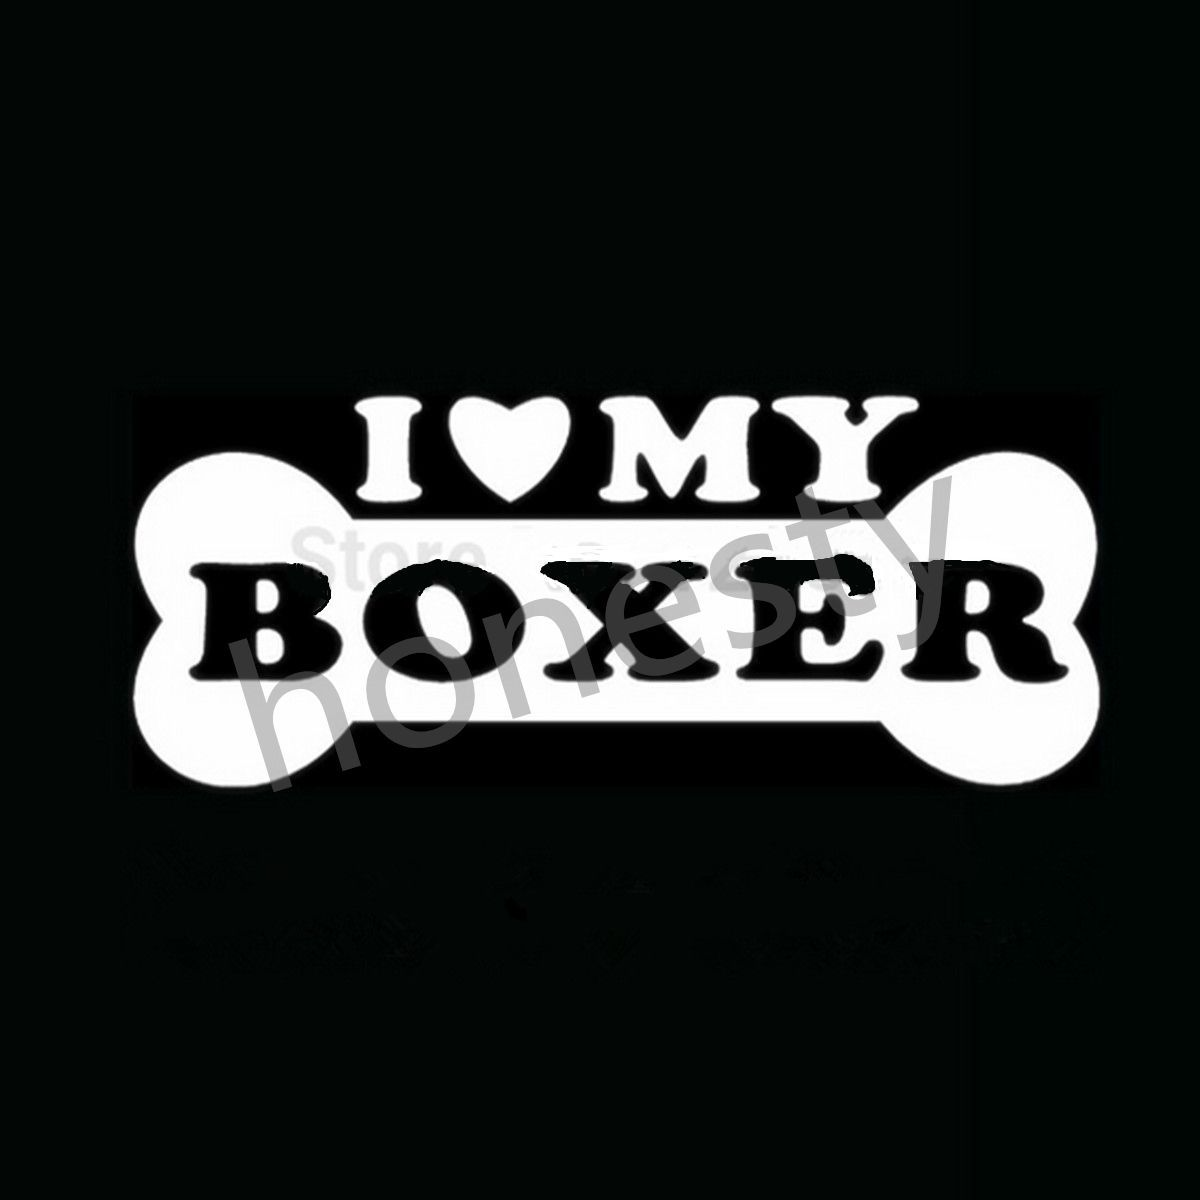 I LOVE MY BOXER Sticker Family Puppy Animal Dog Decal for Car Rear Windshield ...